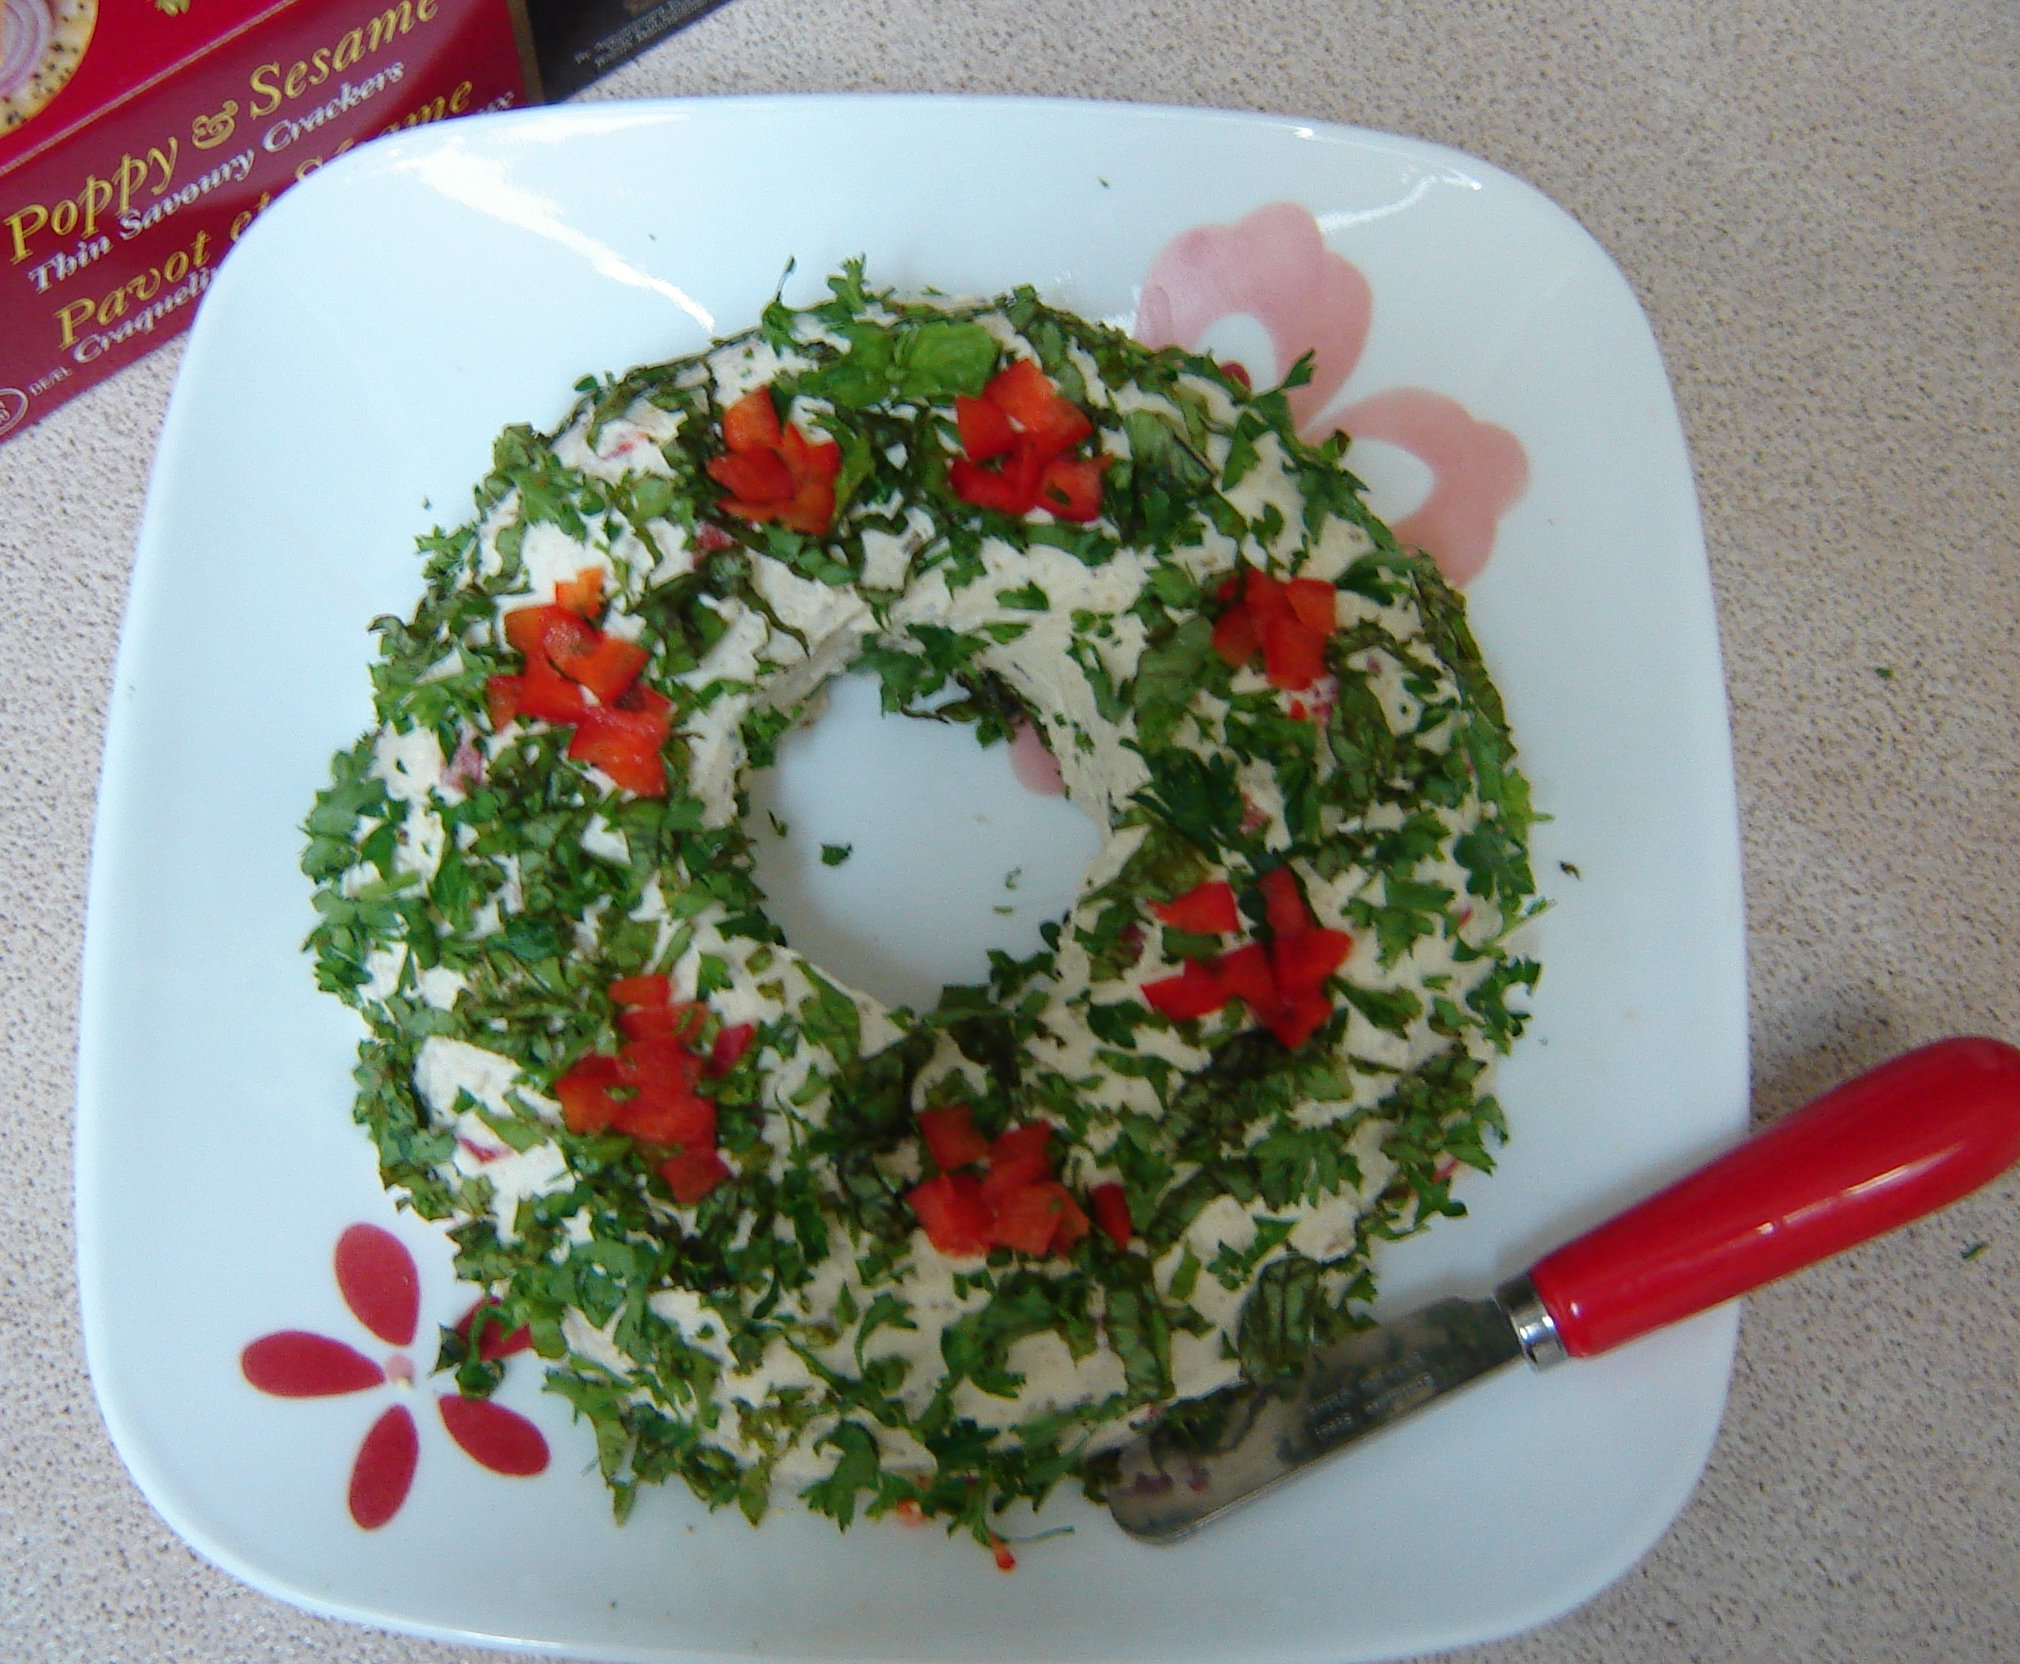 Festive pesto cheese spread